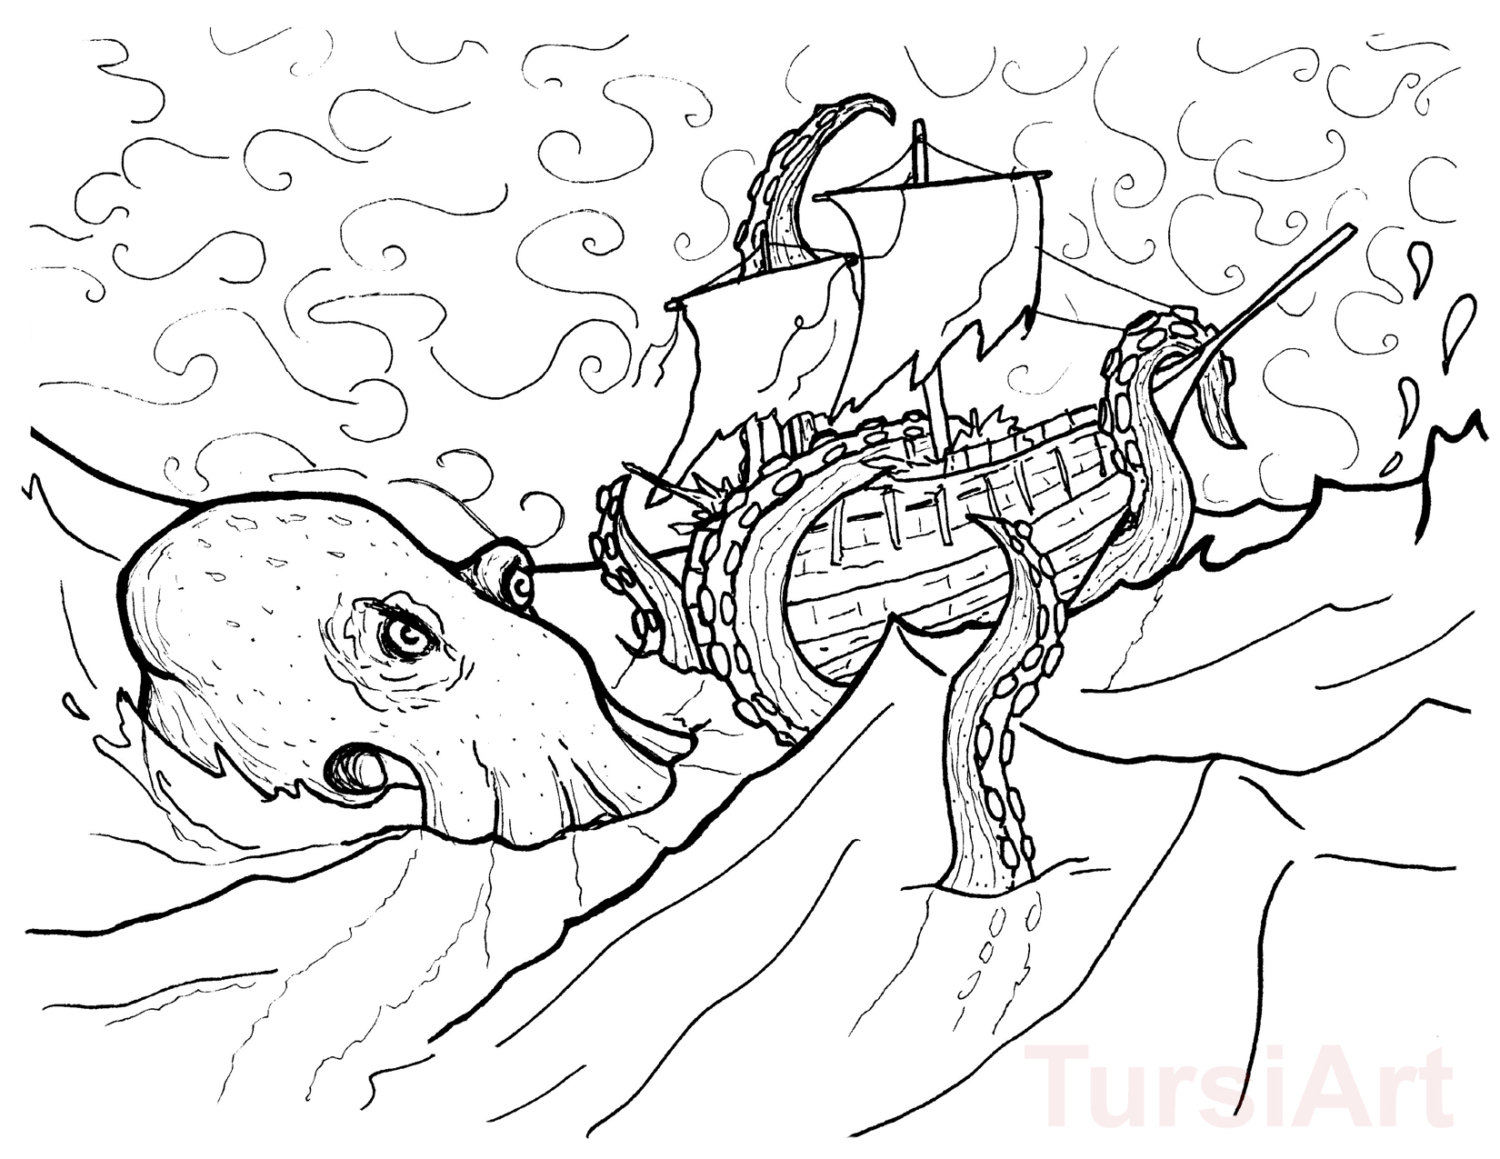 Kraken Atttacking The Ship Coloring Page